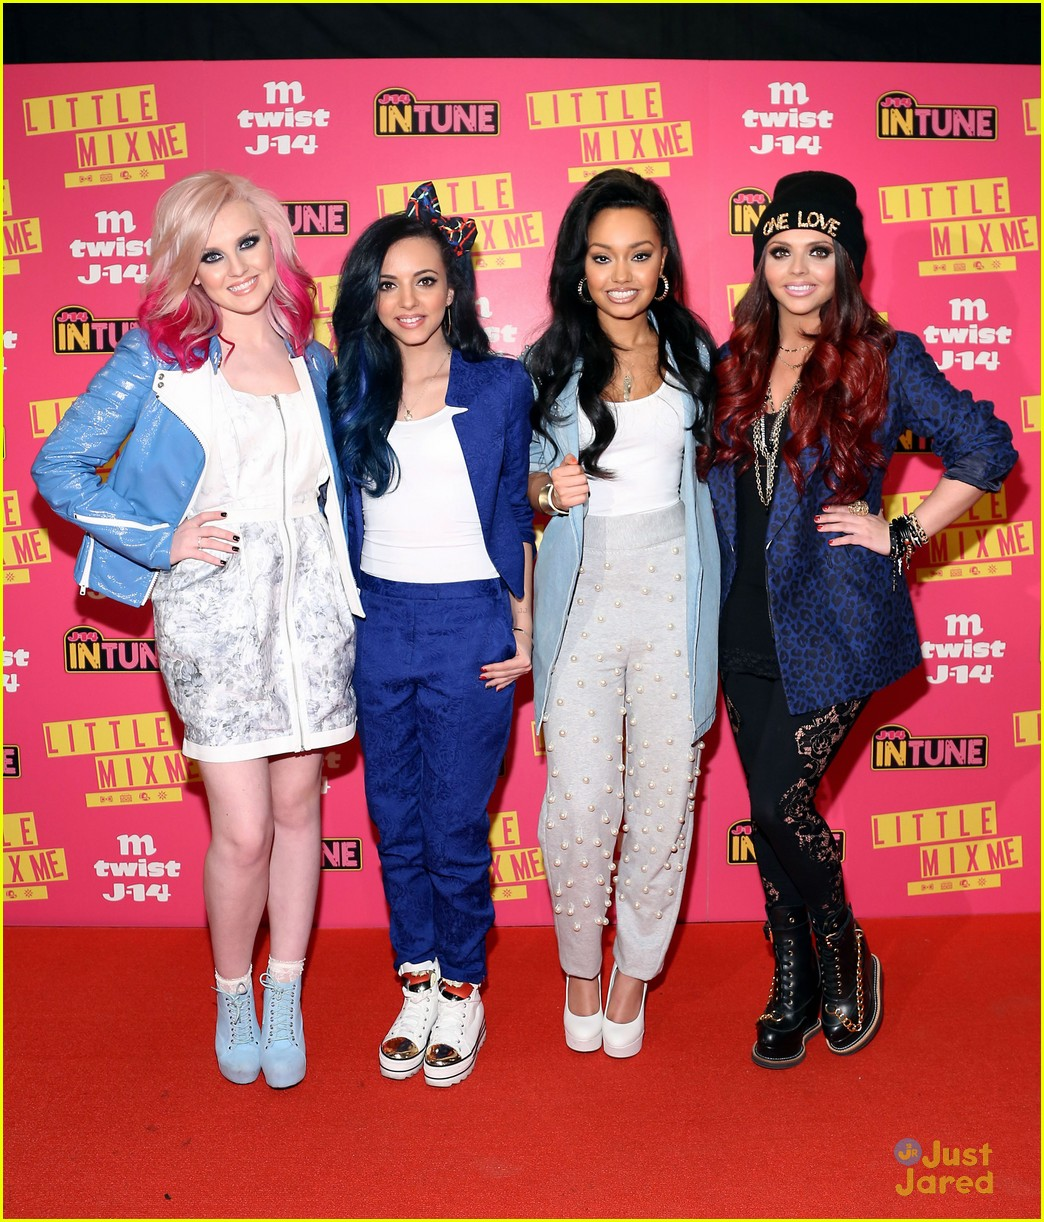 little mix hard rock intune 19